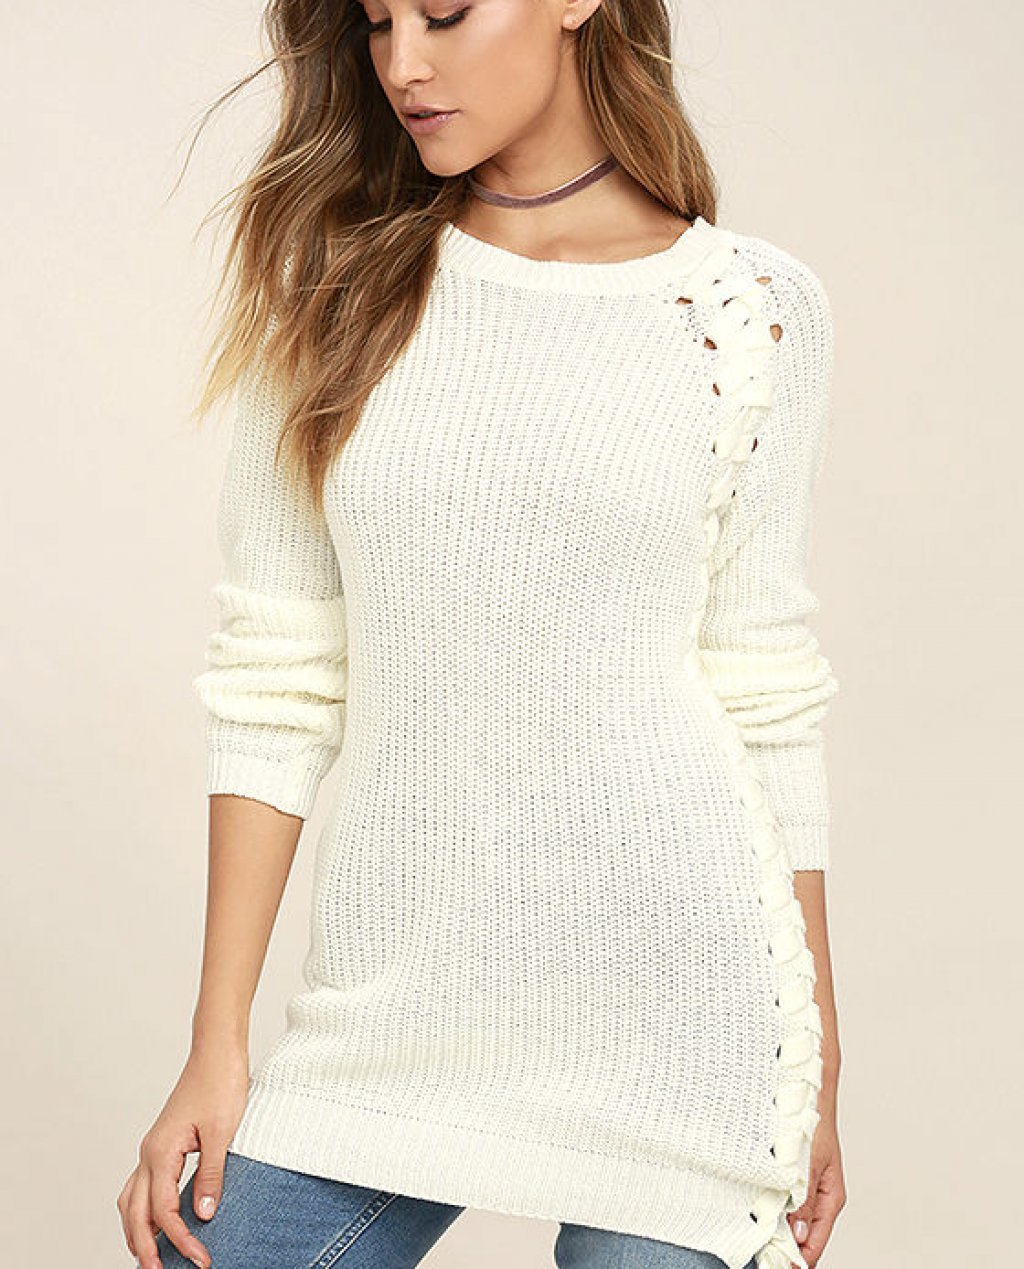 Right Now Cream Lace-Up Sweater